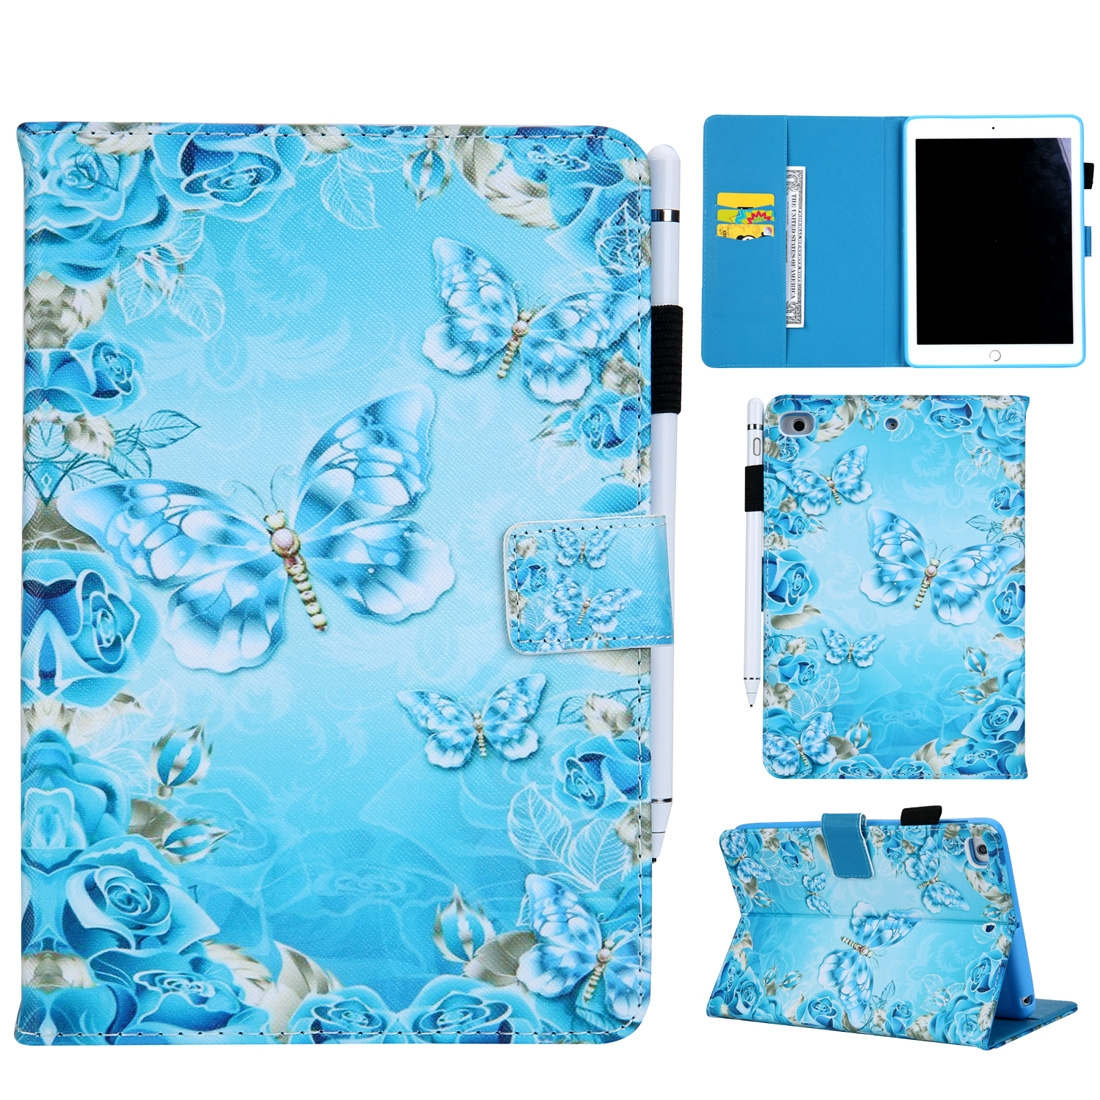 Butterfly Design Leather iPad Mini 4 Case, Also Fits iPad Mini 1,2,3, with Sleeve & Slim Profile